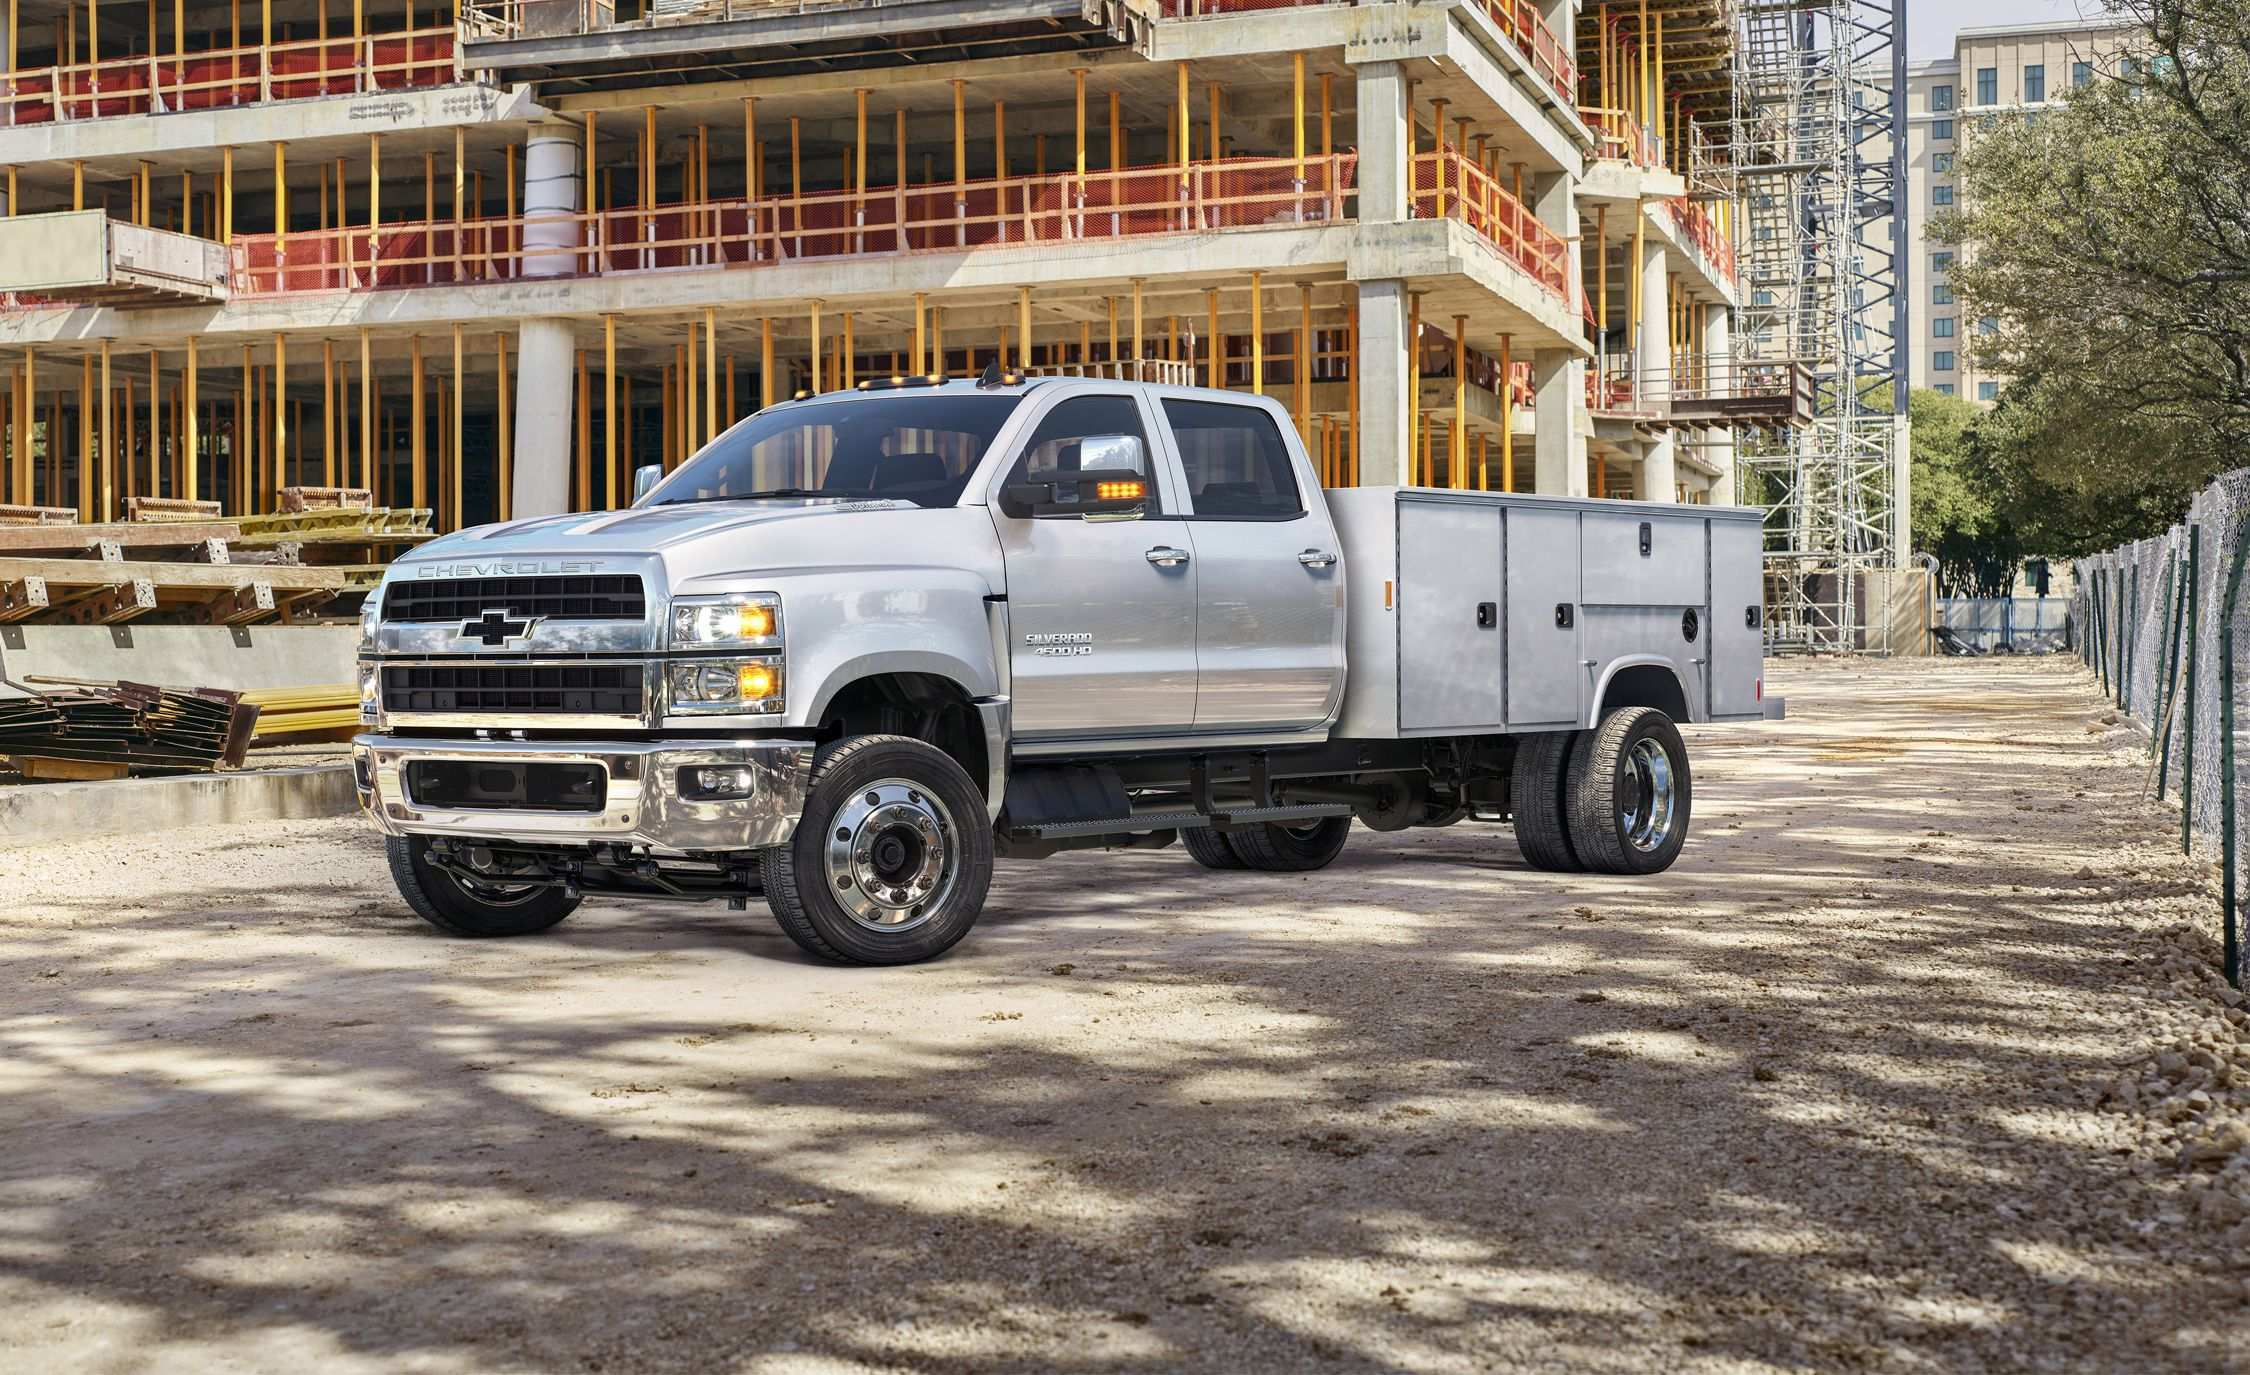 50 Best Review 2020 Gmc 5500 First Drive for 2020 Gmc 5500